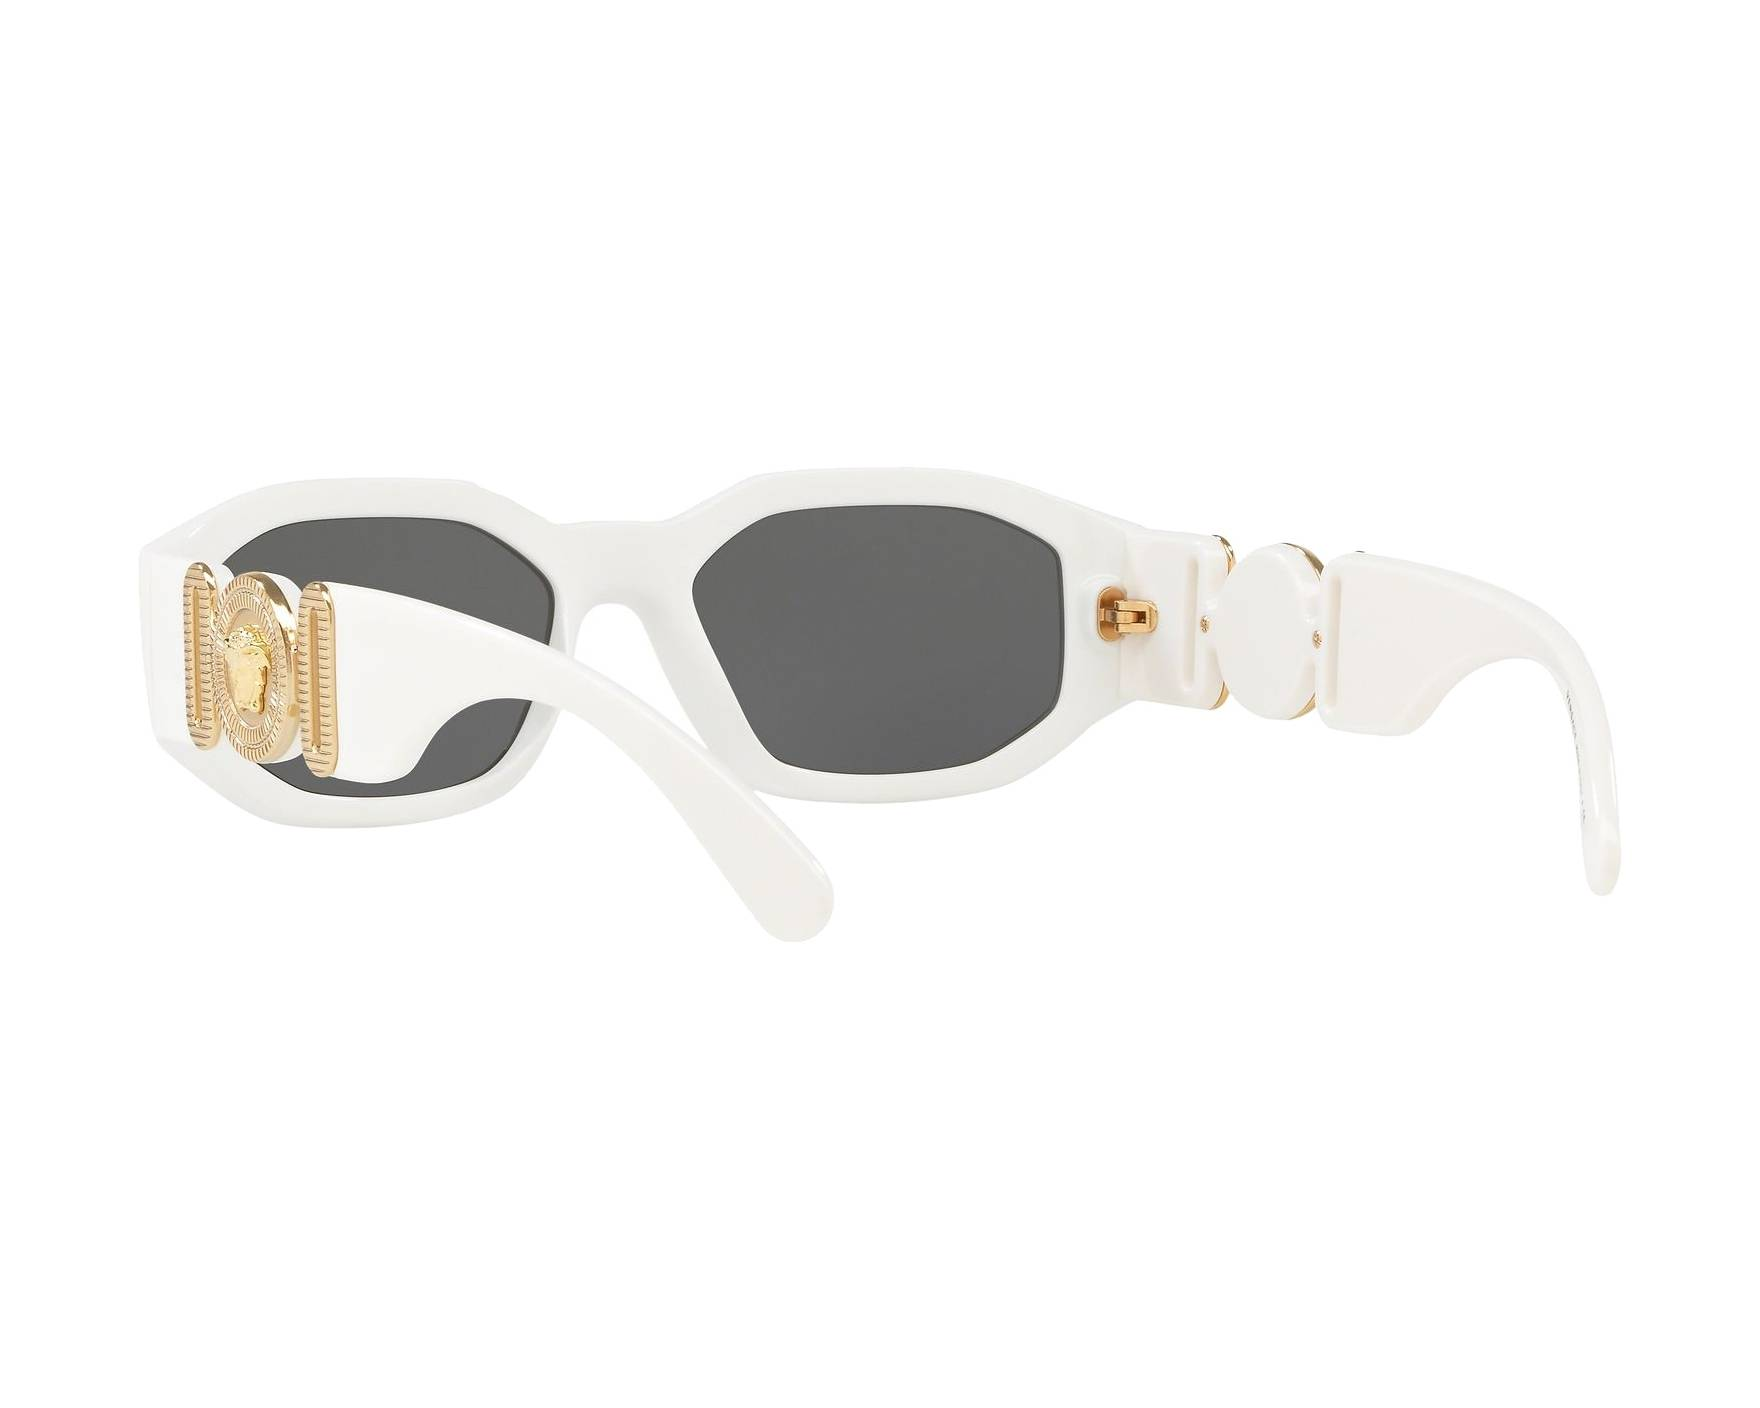 ecf3b3909fd2 Sunglasses Versace VE-4361 401-87 53-18 White 360 degree view 6